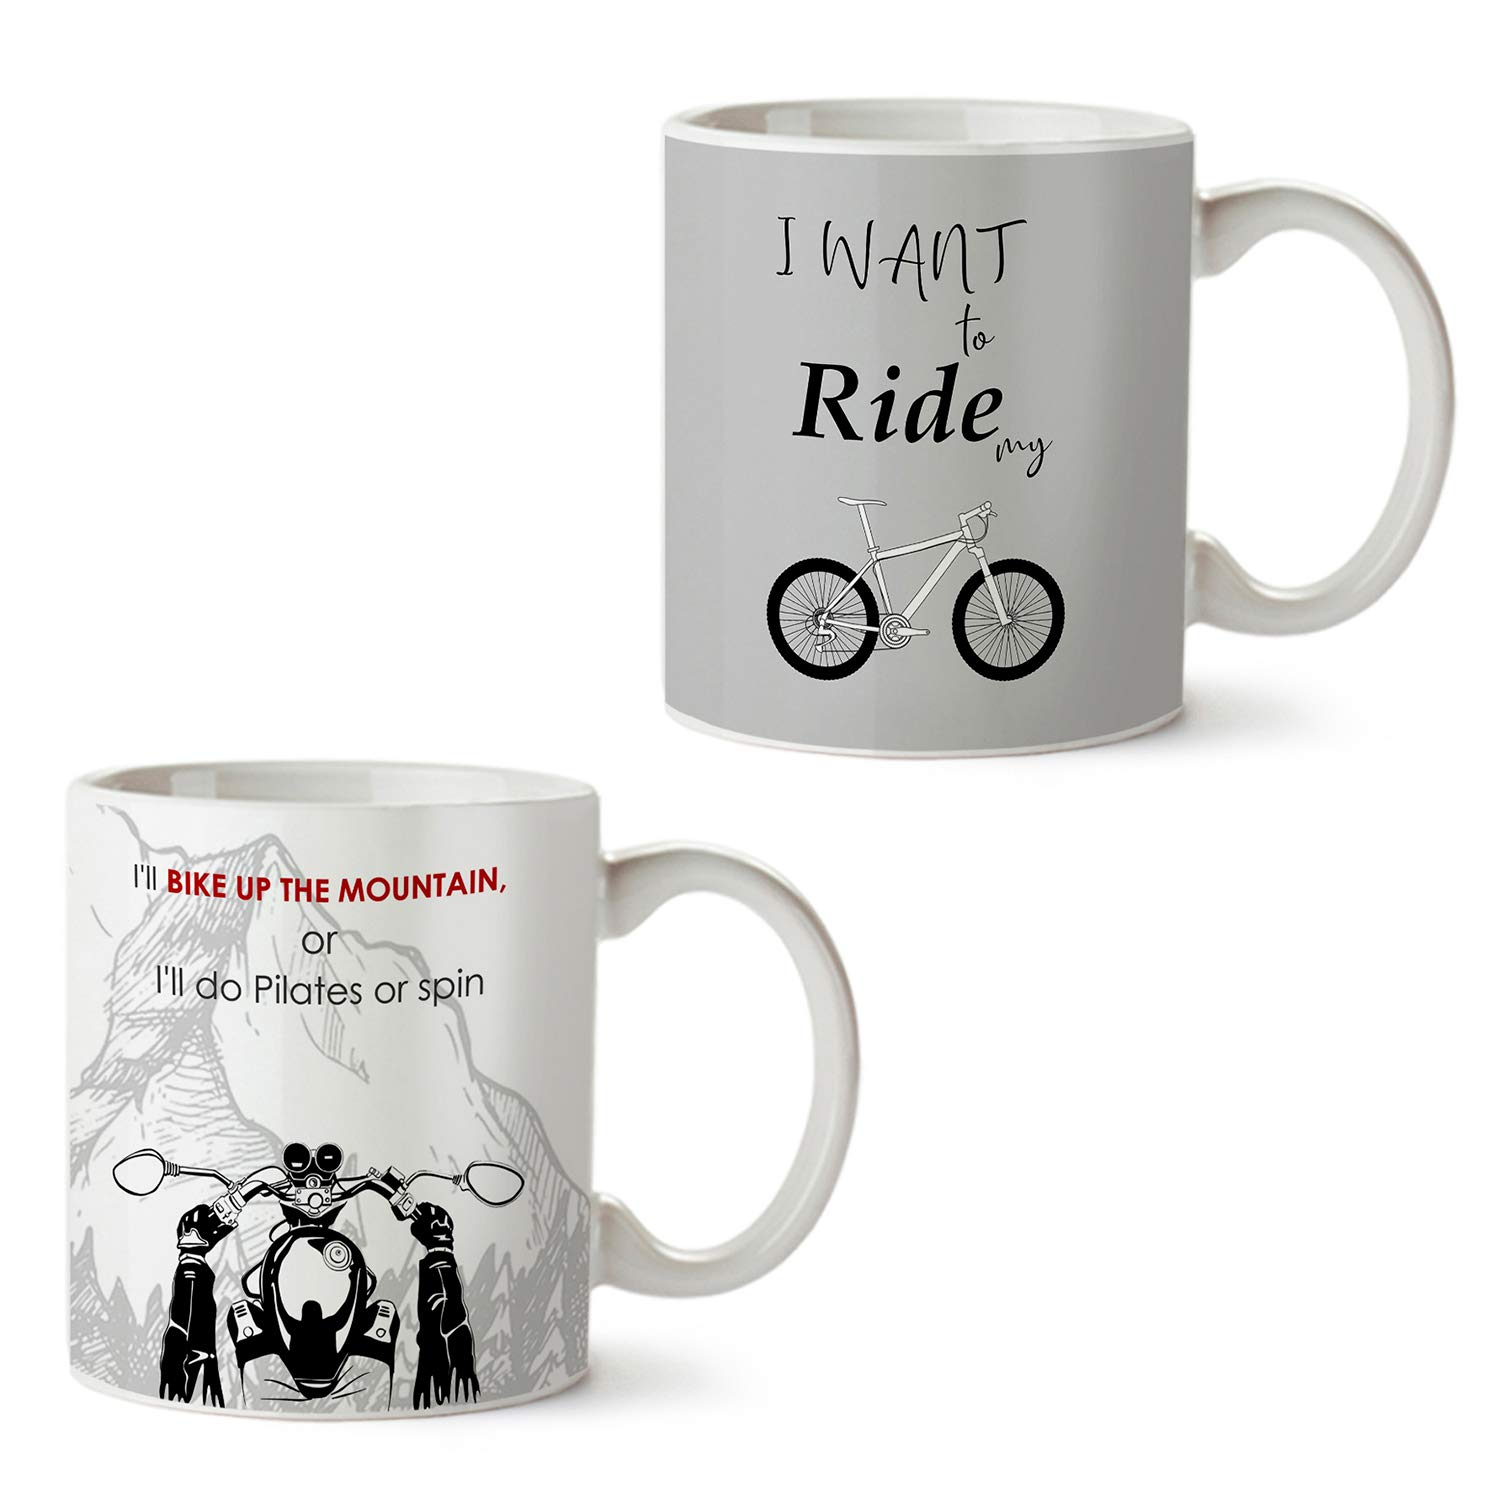 Buy Zebo Trend White Ceramic Printed Coffee Mug With Mountain Adventure With Bike For Travel Lover I Want To Ride My Cycle Funny Quotes Printed Designed Combo Set Of 2